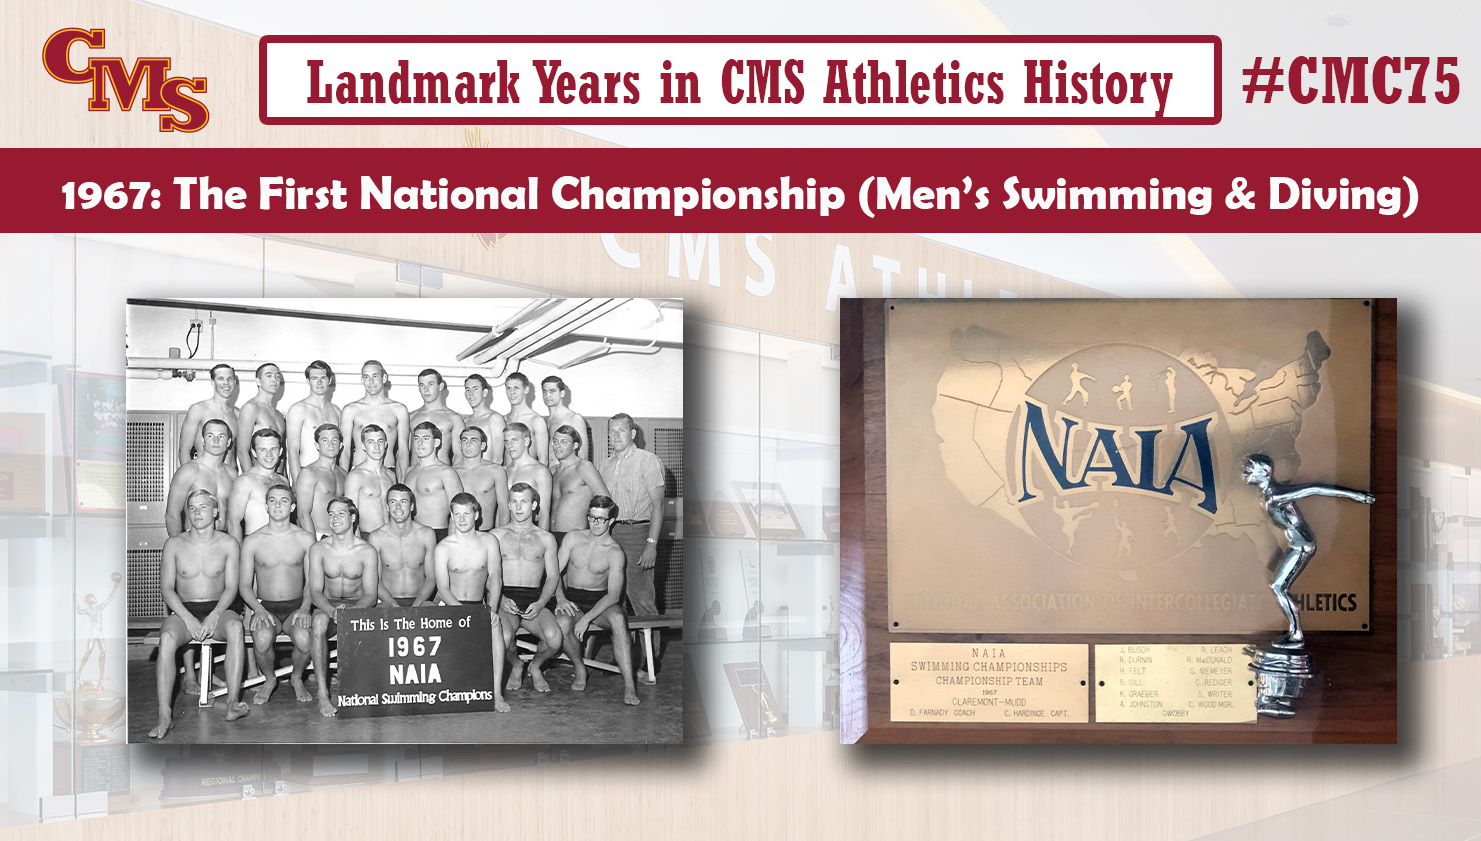 A team photo and the NAIA national championship trophy. Words over the photo read: Landmark Years in CMS Athletics History, 1967: The First National Championship (Men's Swimming and Diving)